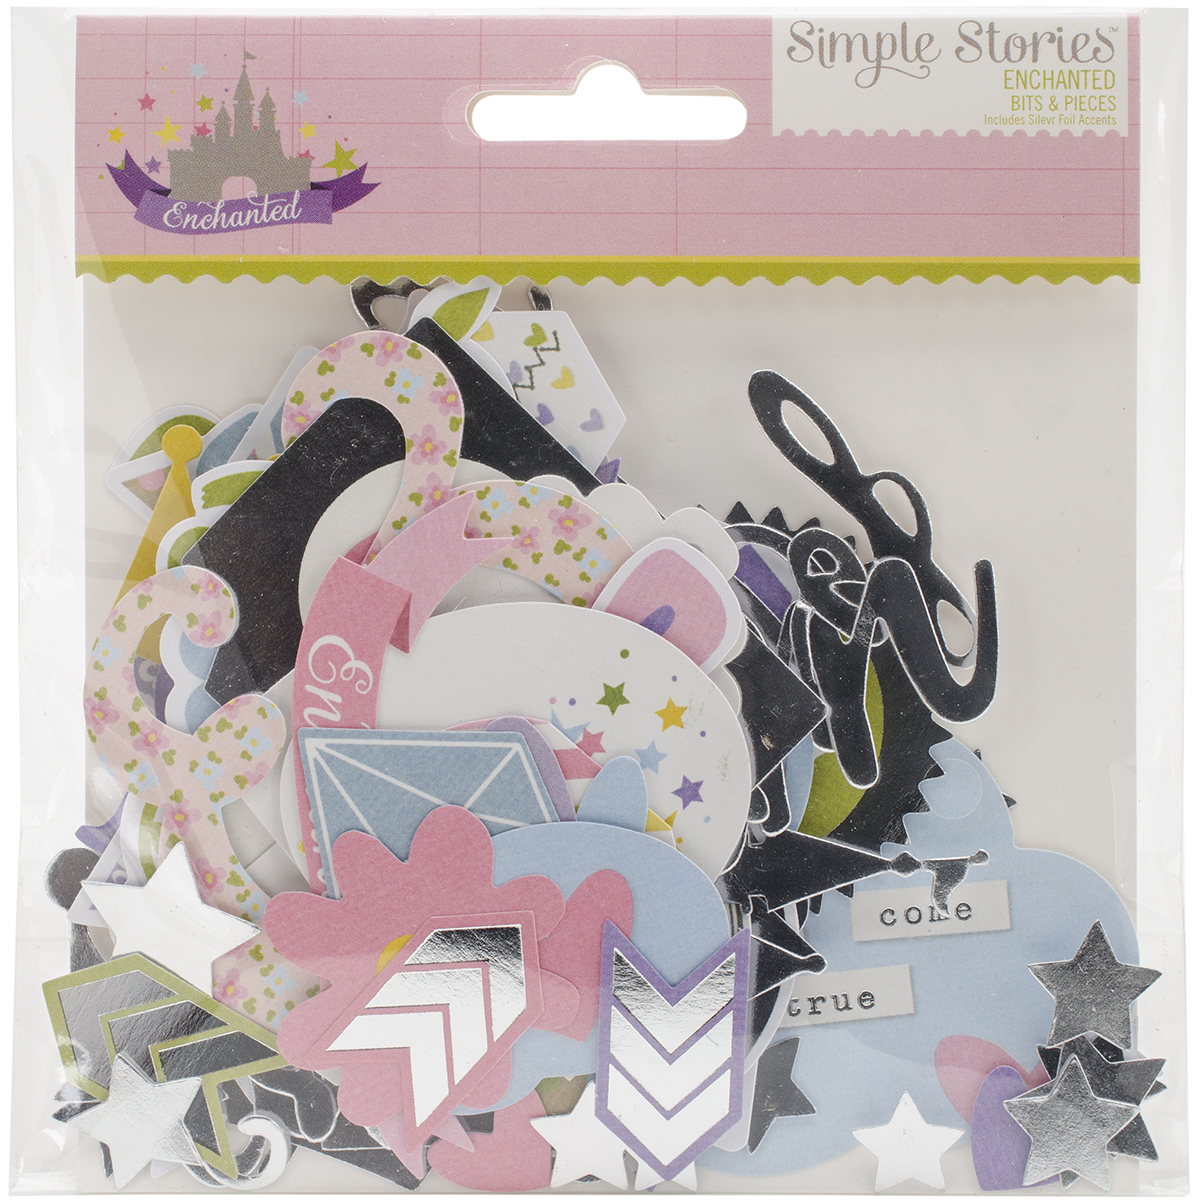 Simple Stories Enchanted Collection Bits and Pieces with Foil Accents